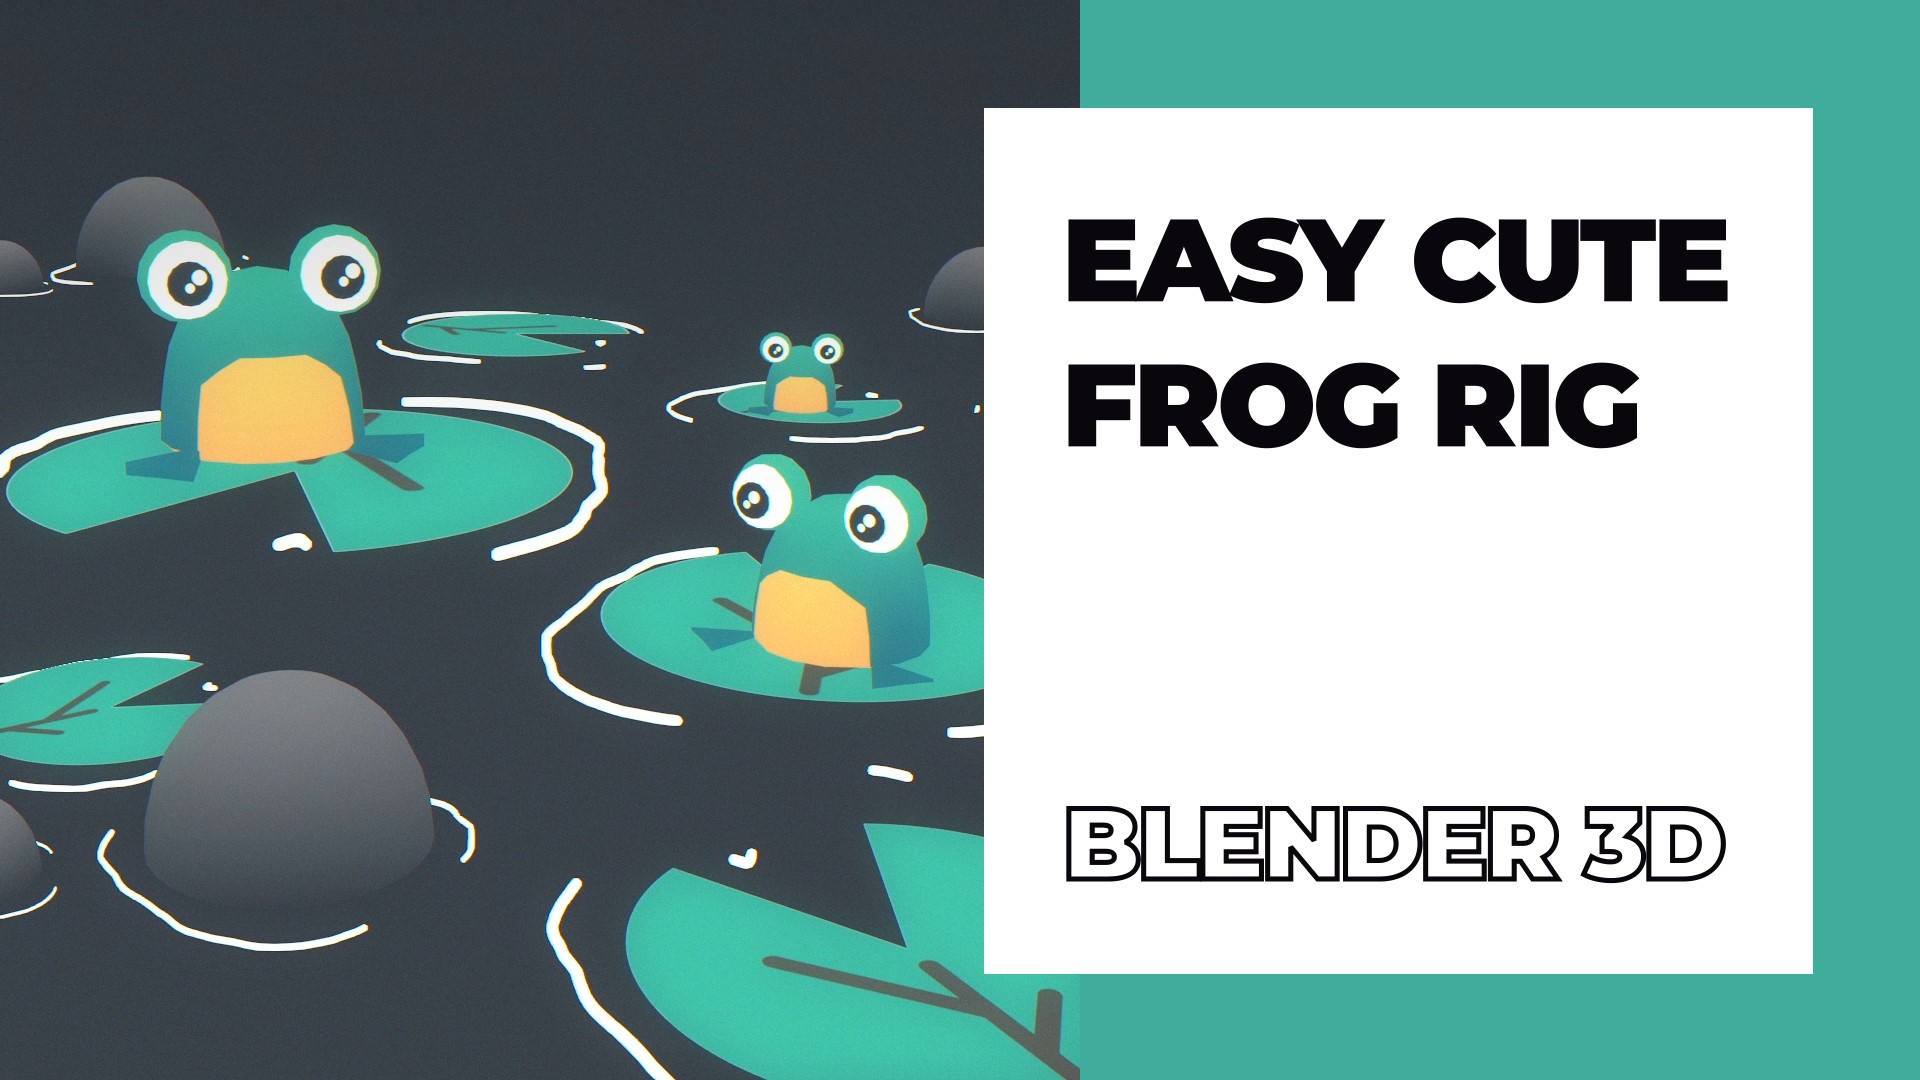 Fragging Frogs Virtual LAN party #12; Saturday March 5 10